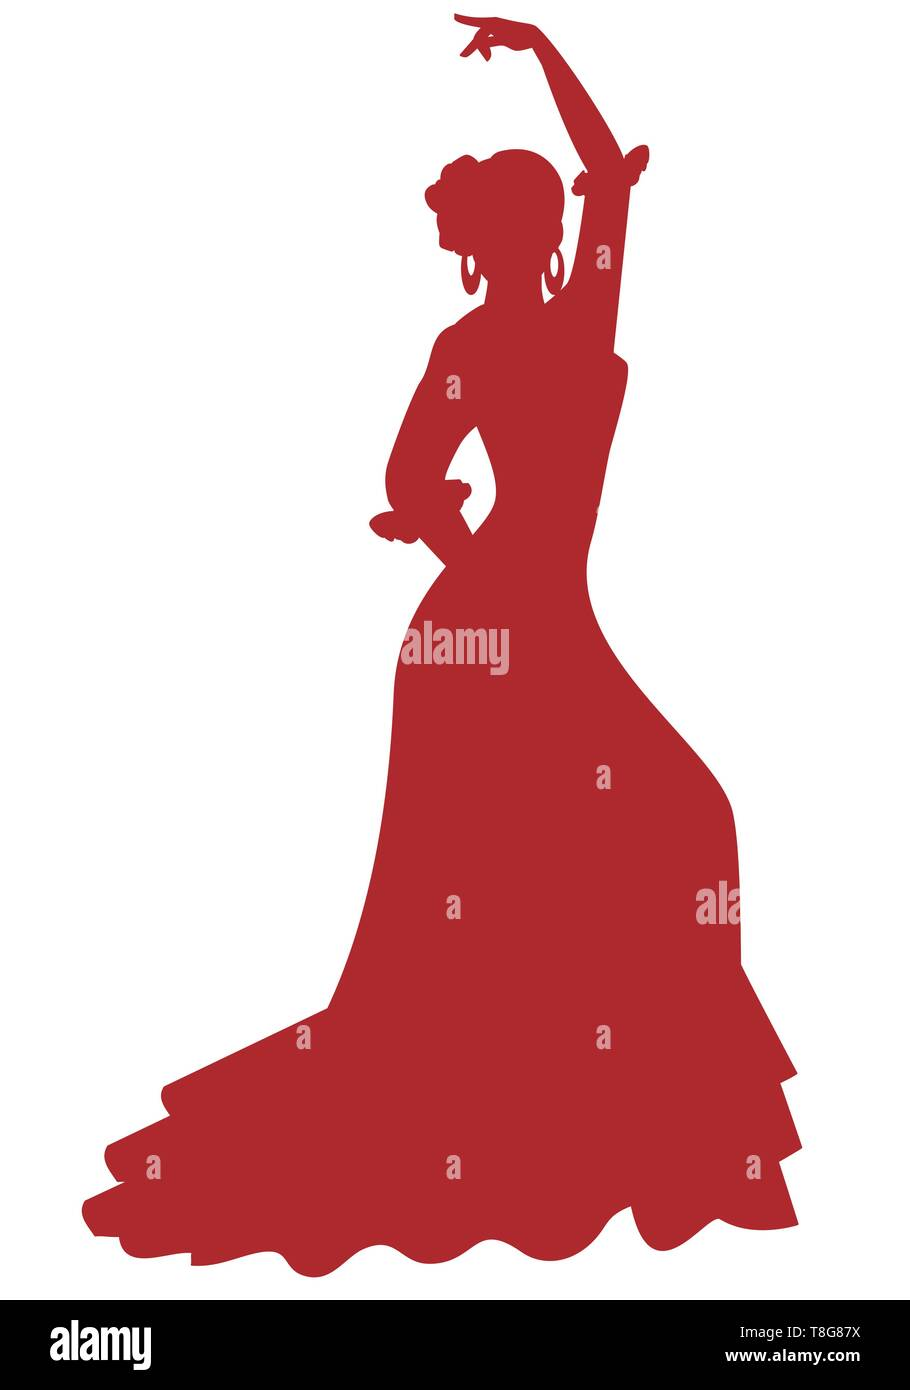 Silhouette of Spanish Flamenco dancer woman dancing isolated on white background - Stock Image